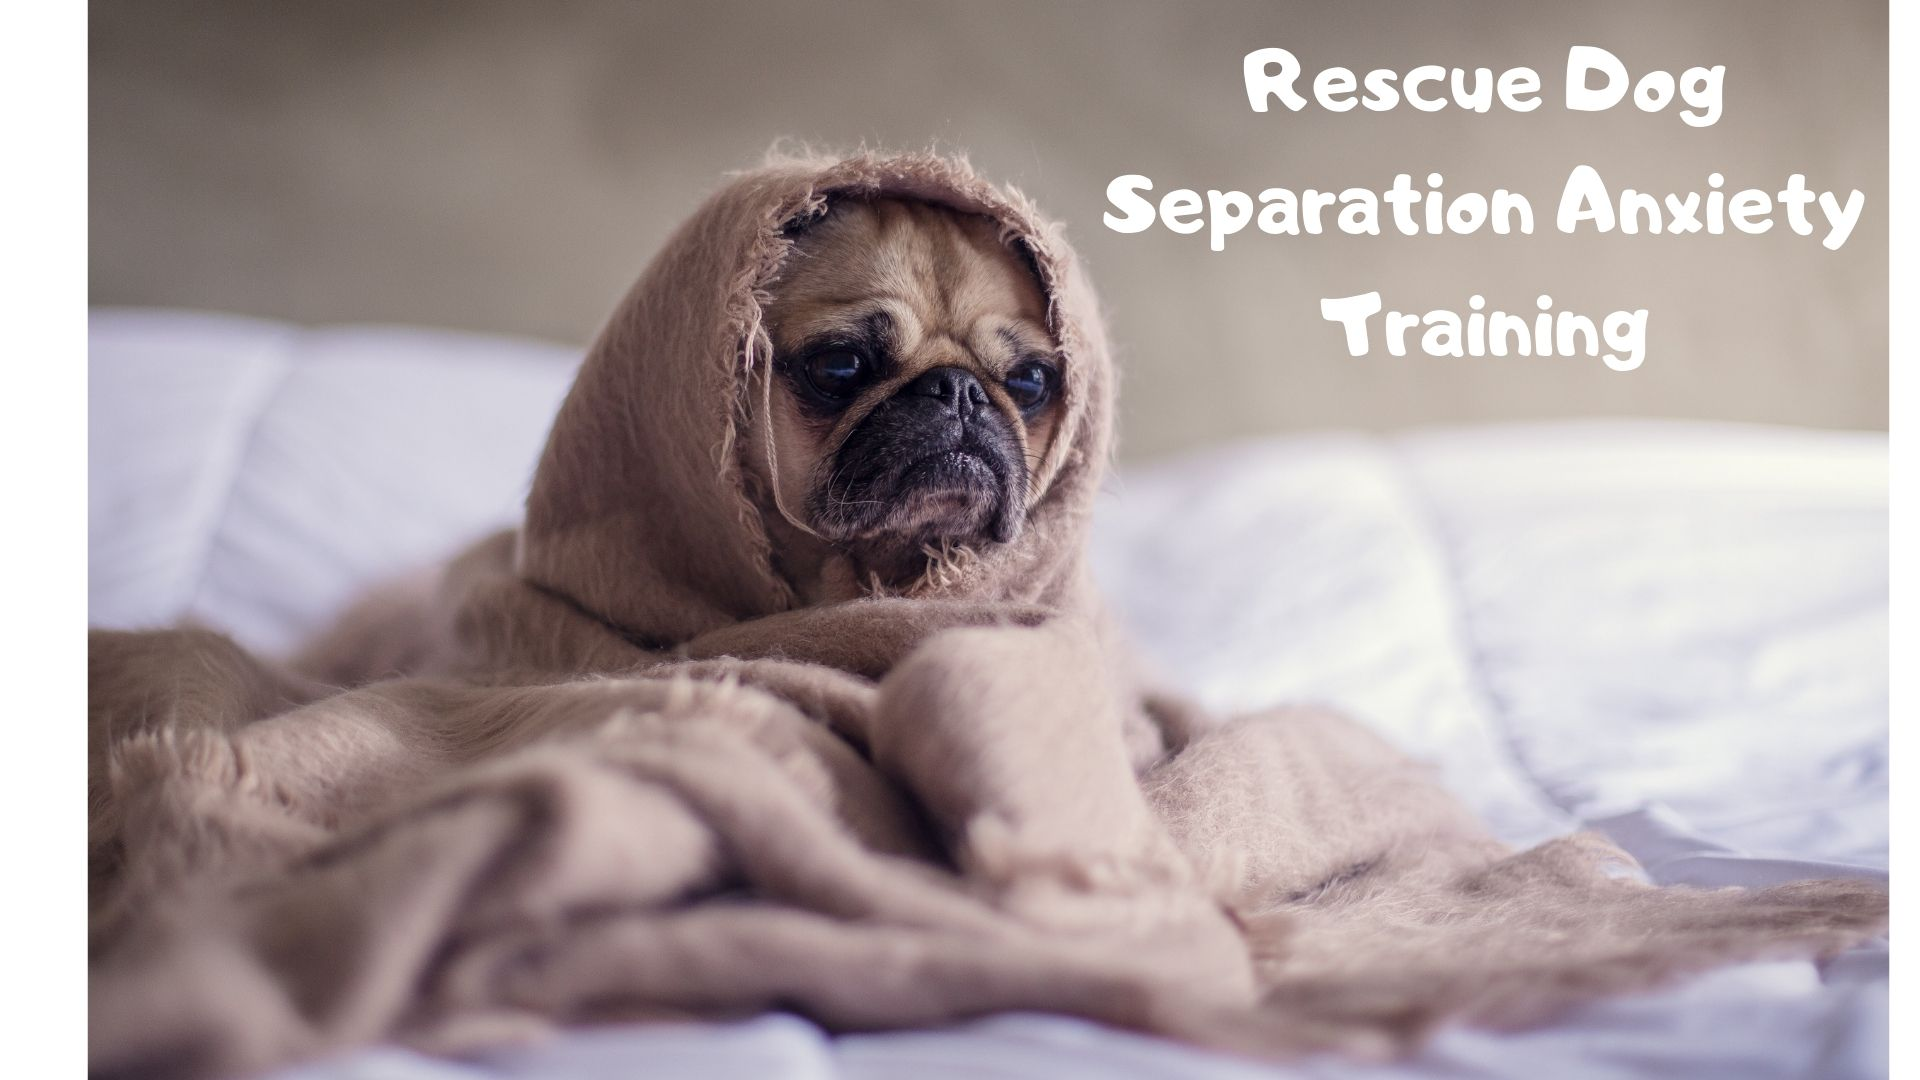 Rescue Dog Separation Anxiety Training